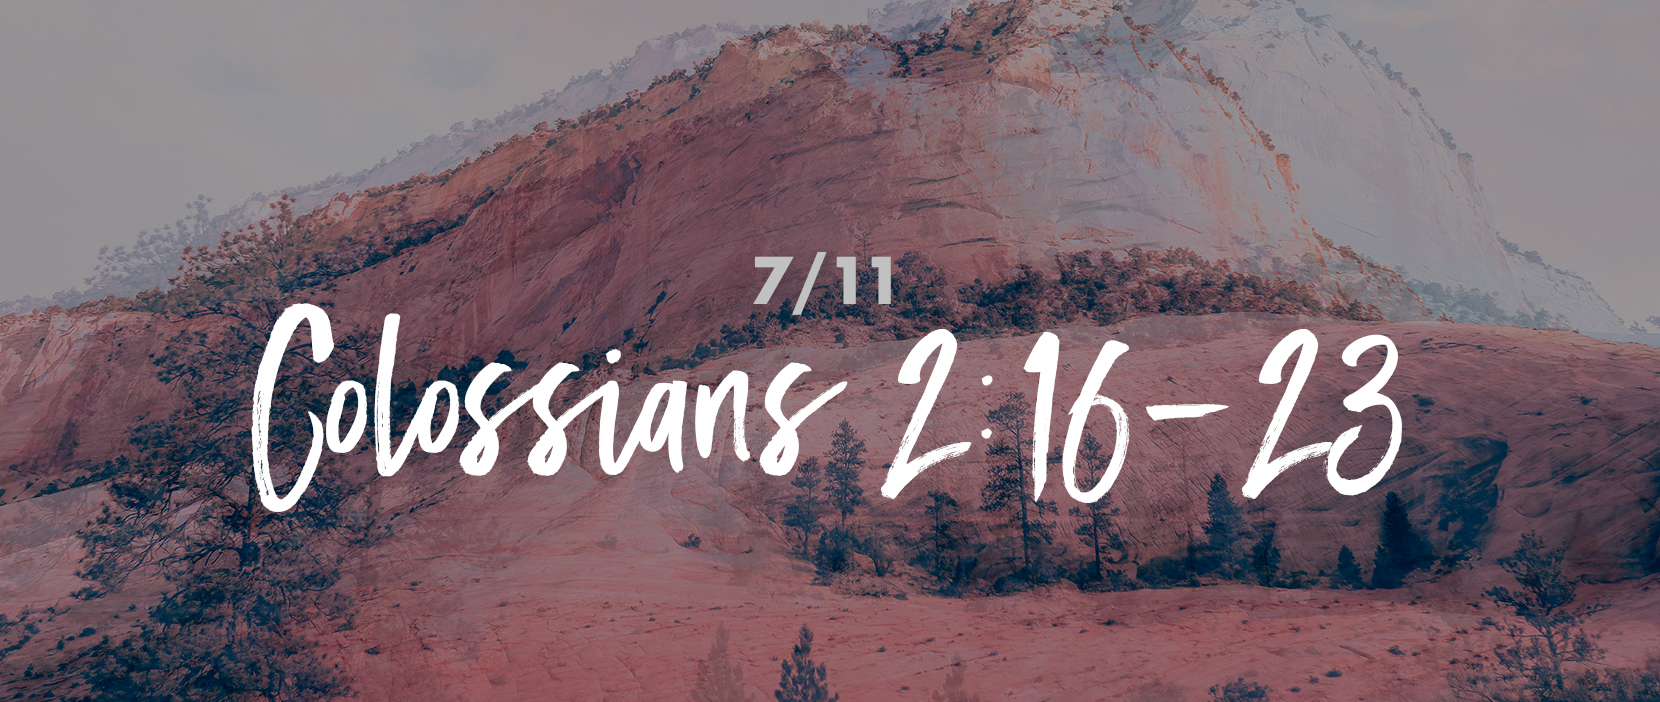 Main image for Part 7 – Colossians 2:16-23